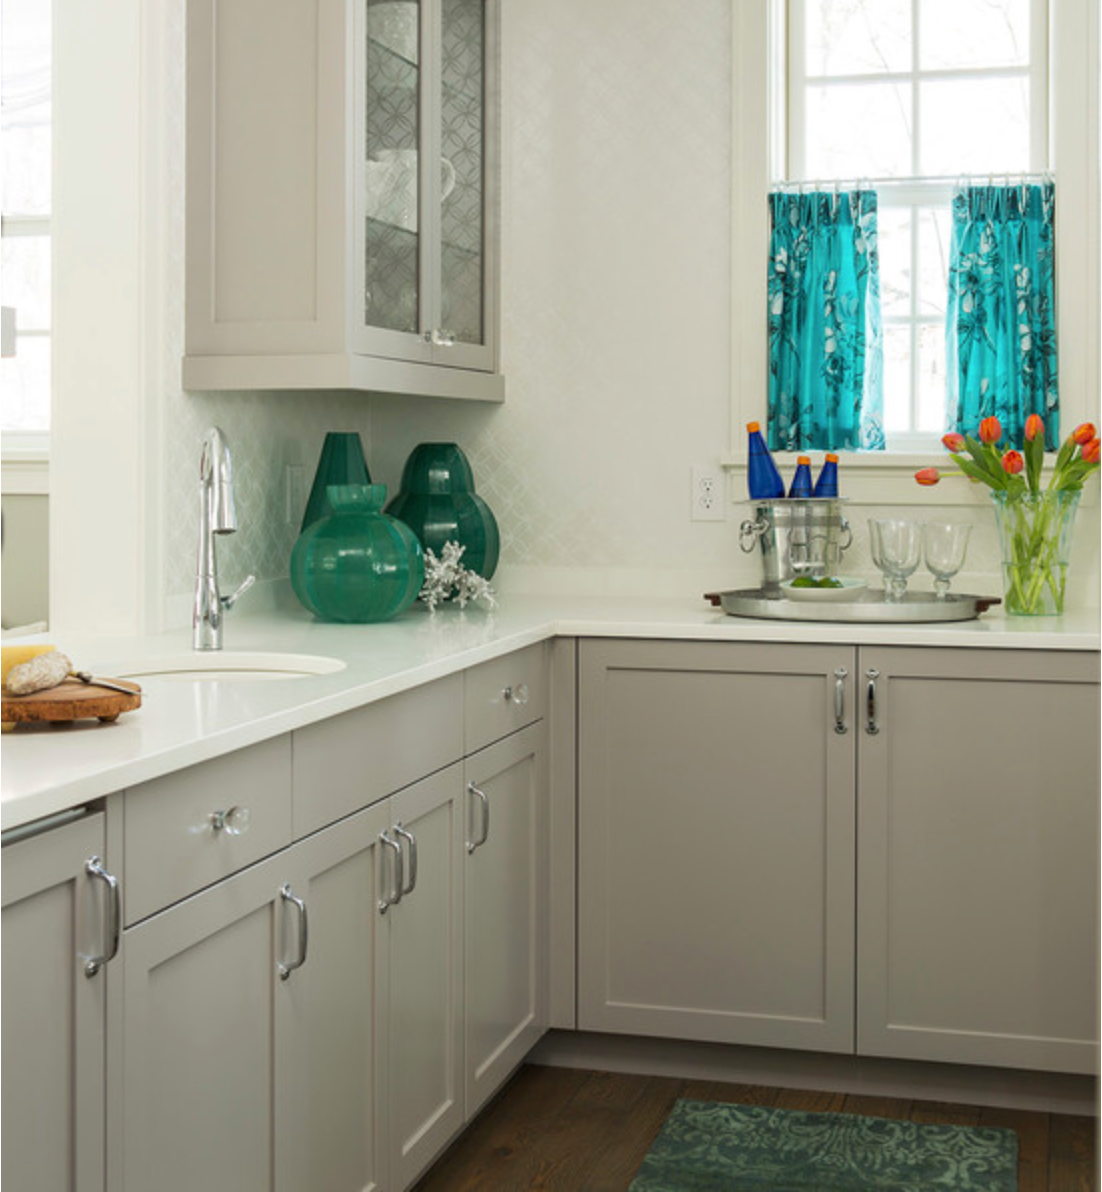 Bm baltic gray uc cooking spaces pinterest spaces and kitchens